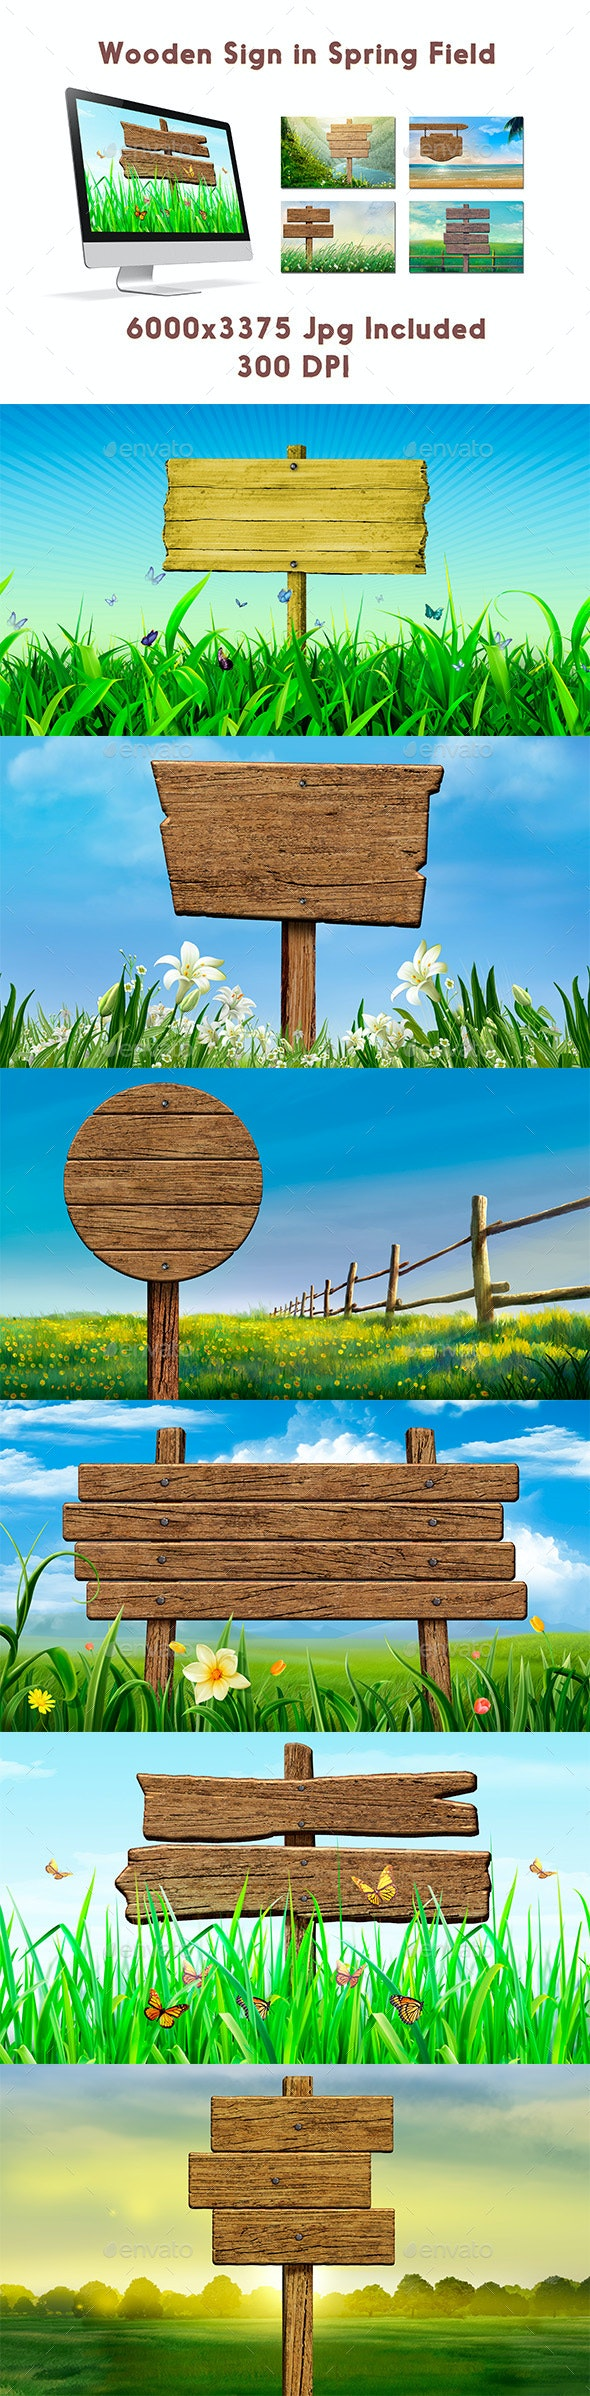 Wooden Sign in Spring Field - Backgrounds Graphics